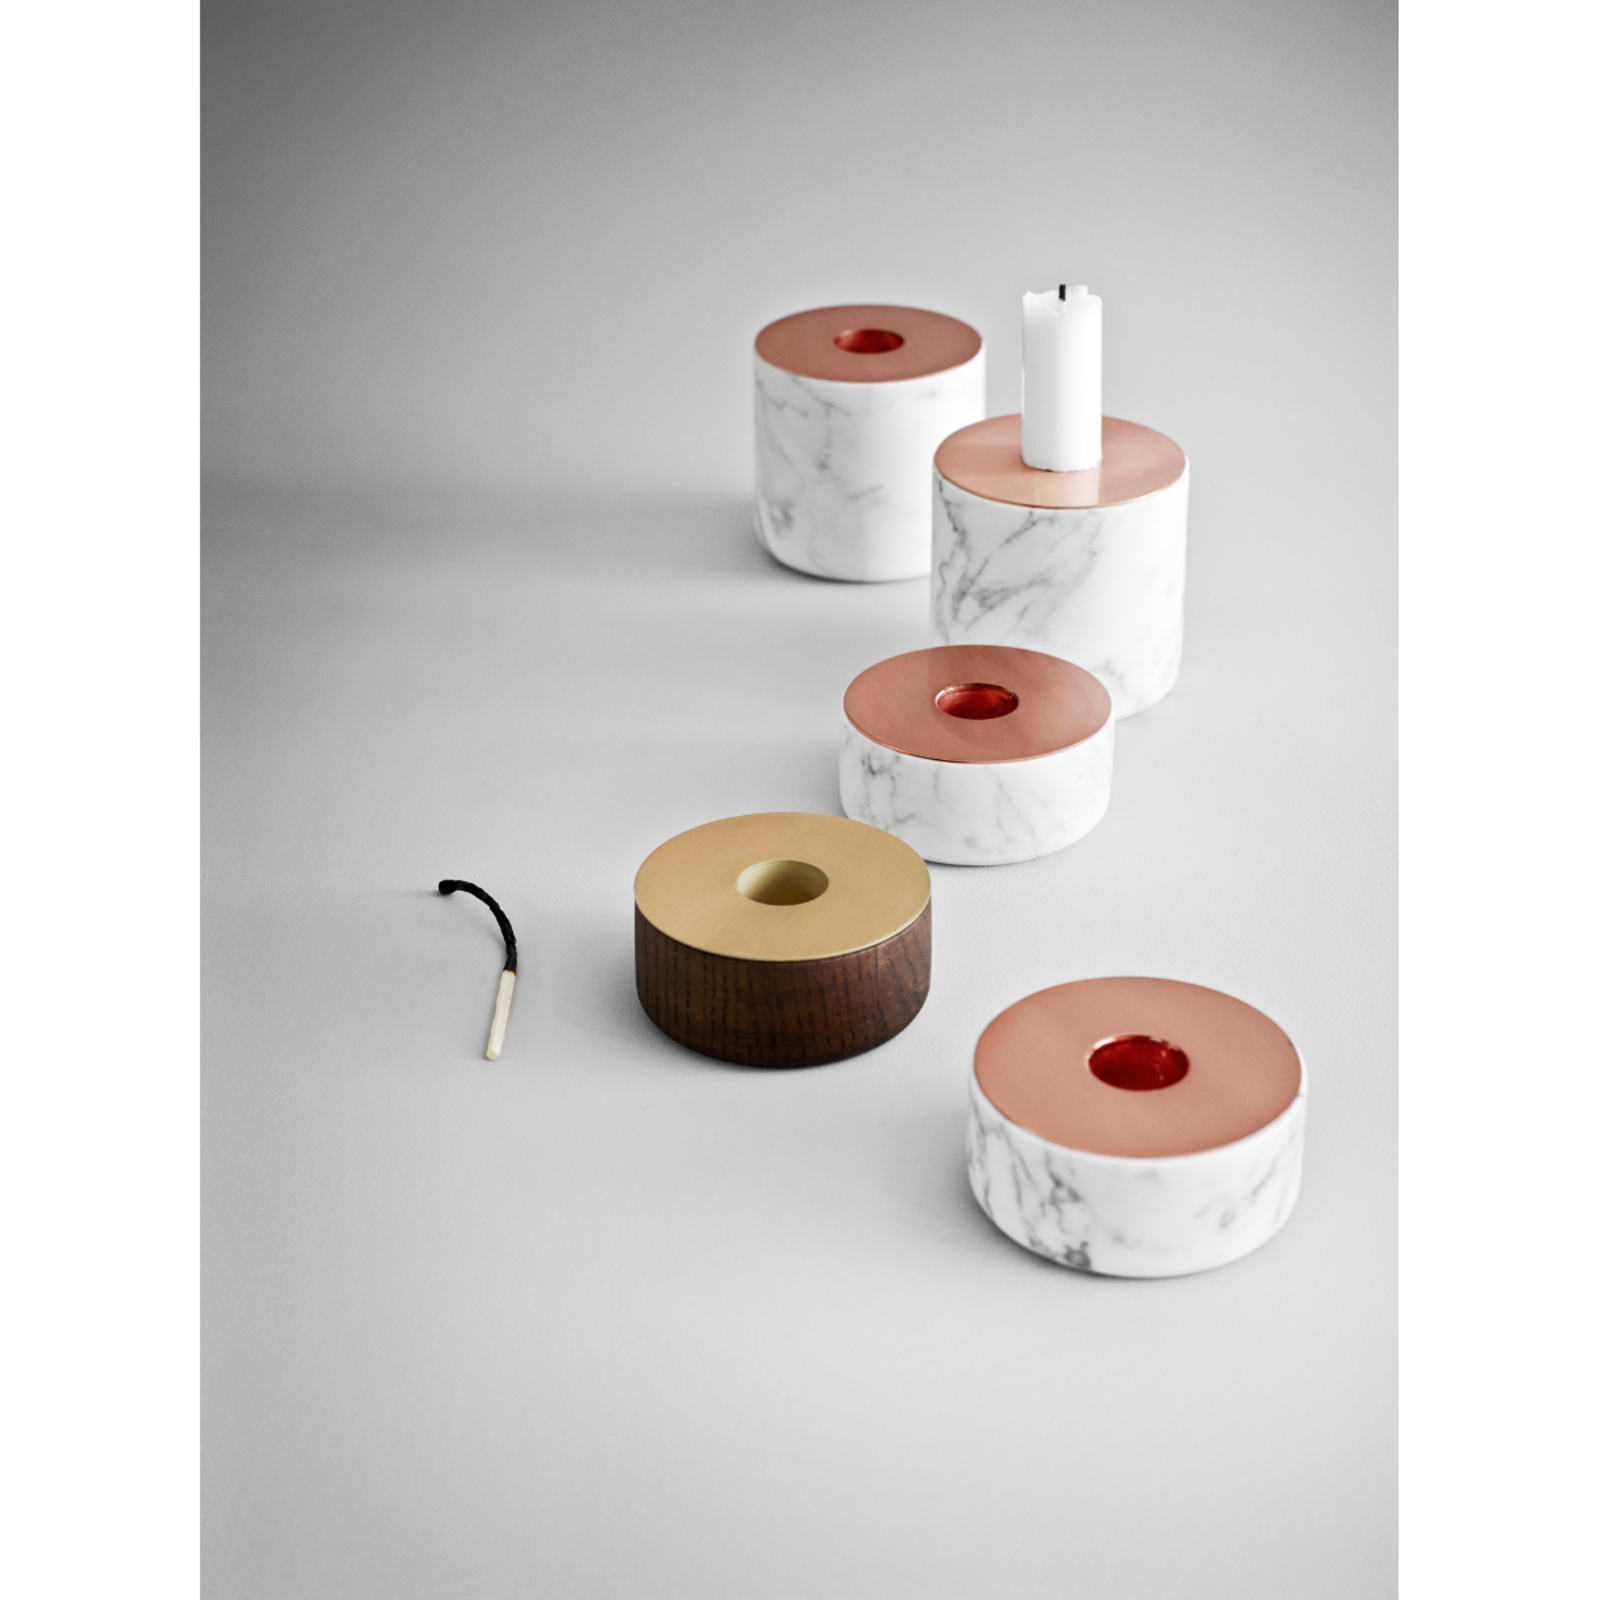 The aptly named Chunk Candleholder from Menu is a solid, substantial piece that looks purposeful and strong when set on a shelf or table. The cylindrical marble slab features a copper top, which counters the organic, raw nature of the marble with sophisticated shine. The result is a well-balanced accent that is an attractive decorative element whether it is holding a candle or resting on its own.   Available in two sizes: Large and Small.  Modern Candlestick Holders by Marianne Colahan